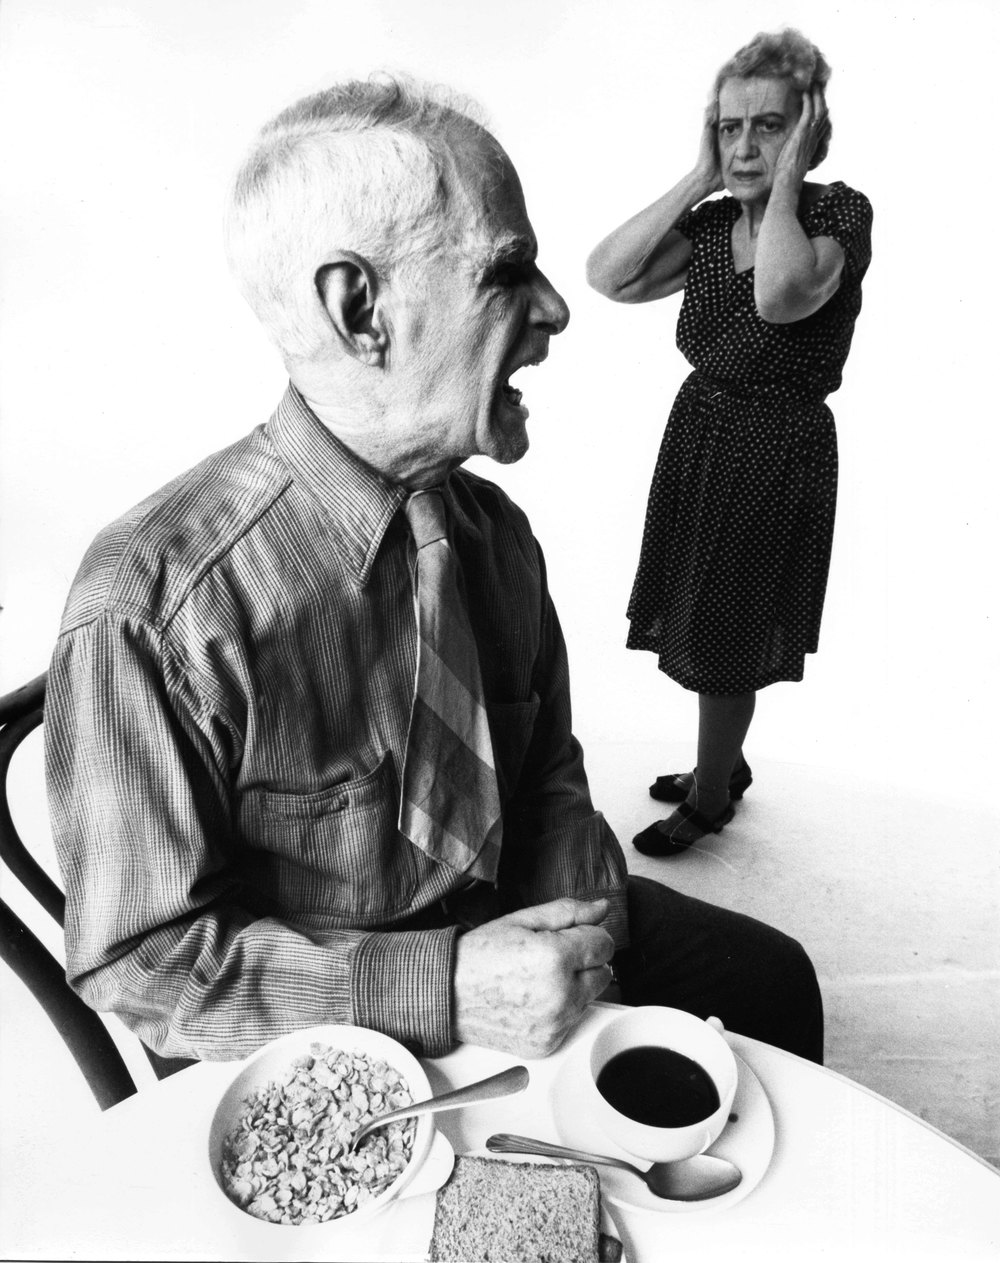 16_20_Frustrated old couple #2_Dan Wynn Archive.jpeg